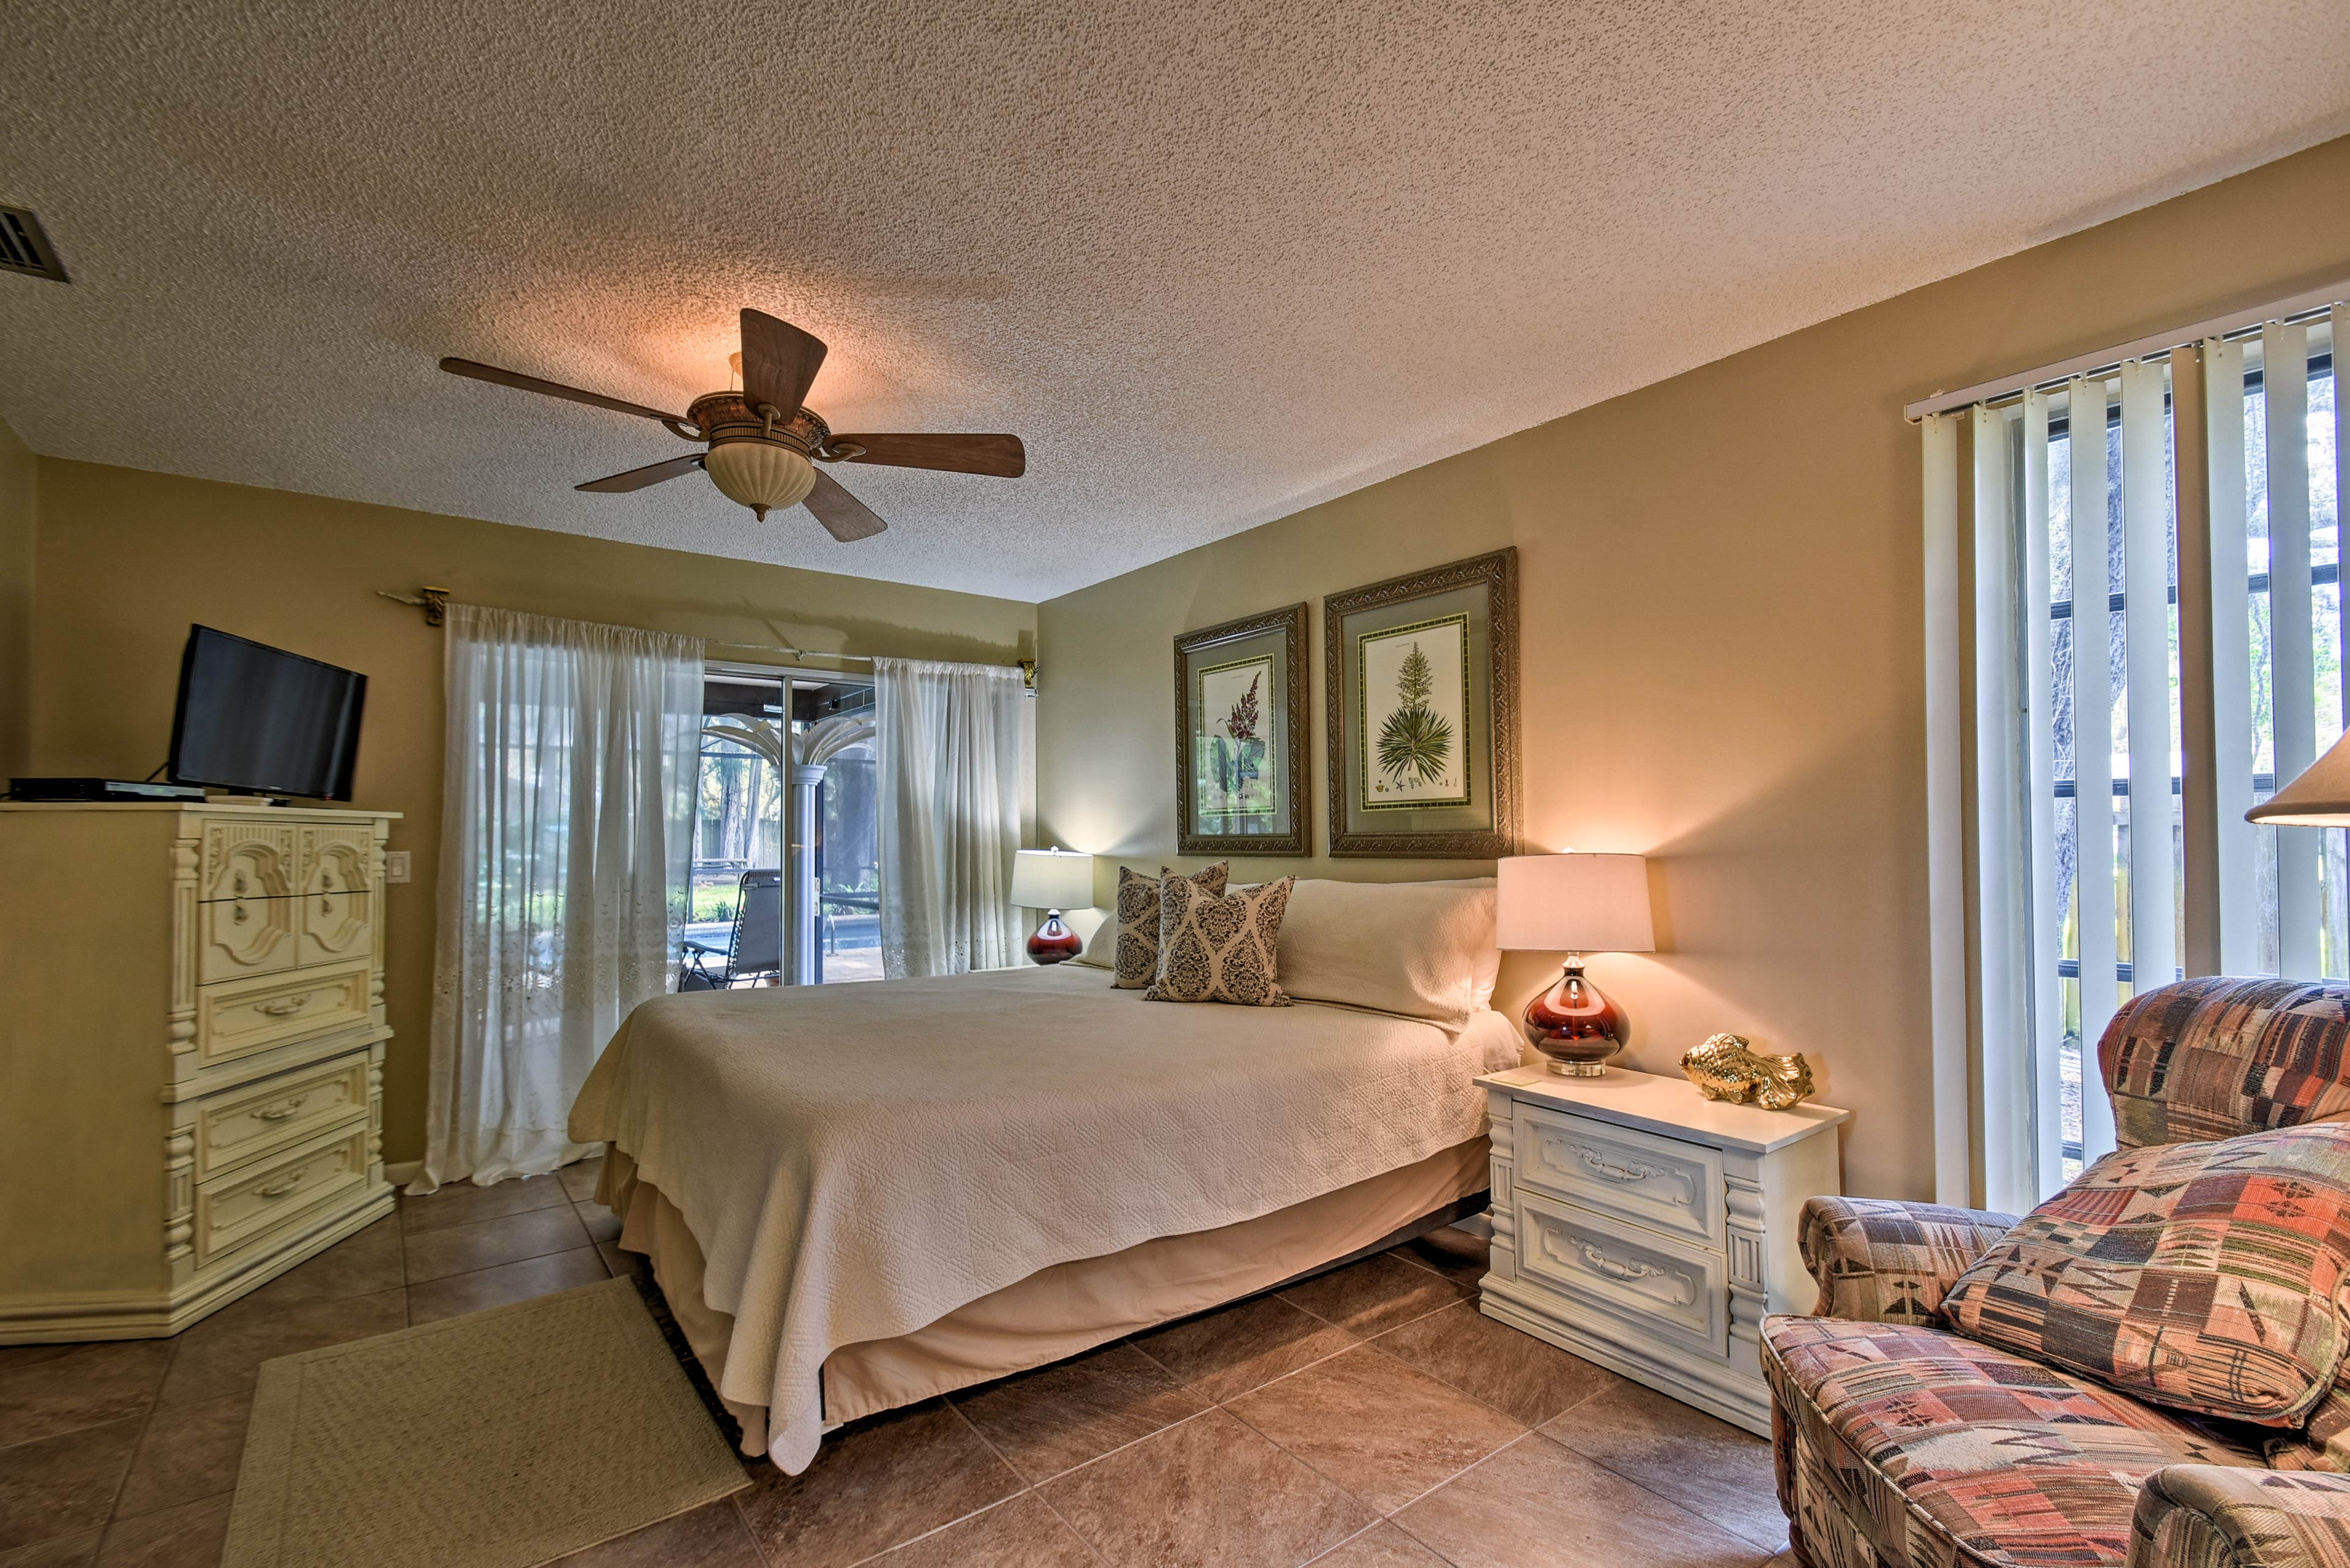 The master bedroom has a large king-sized bed to lie back in during downtime.